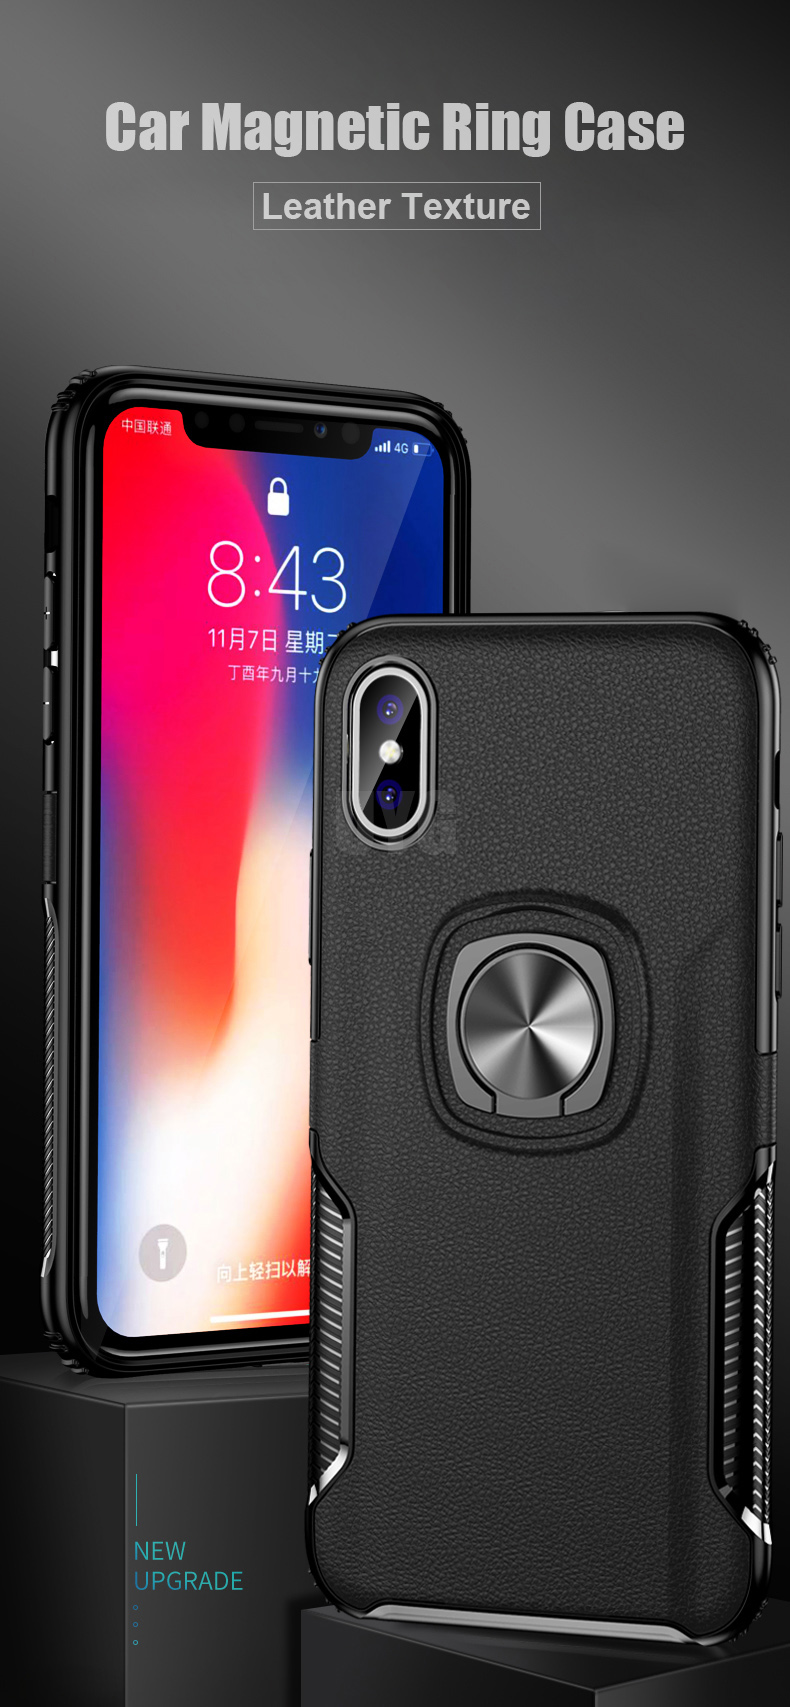 Luxury Leather texture Bracket case For iPhone x xs max xr Shockproof armor cover For iphone 6 6s 7 8 plus case with ring holder (1)